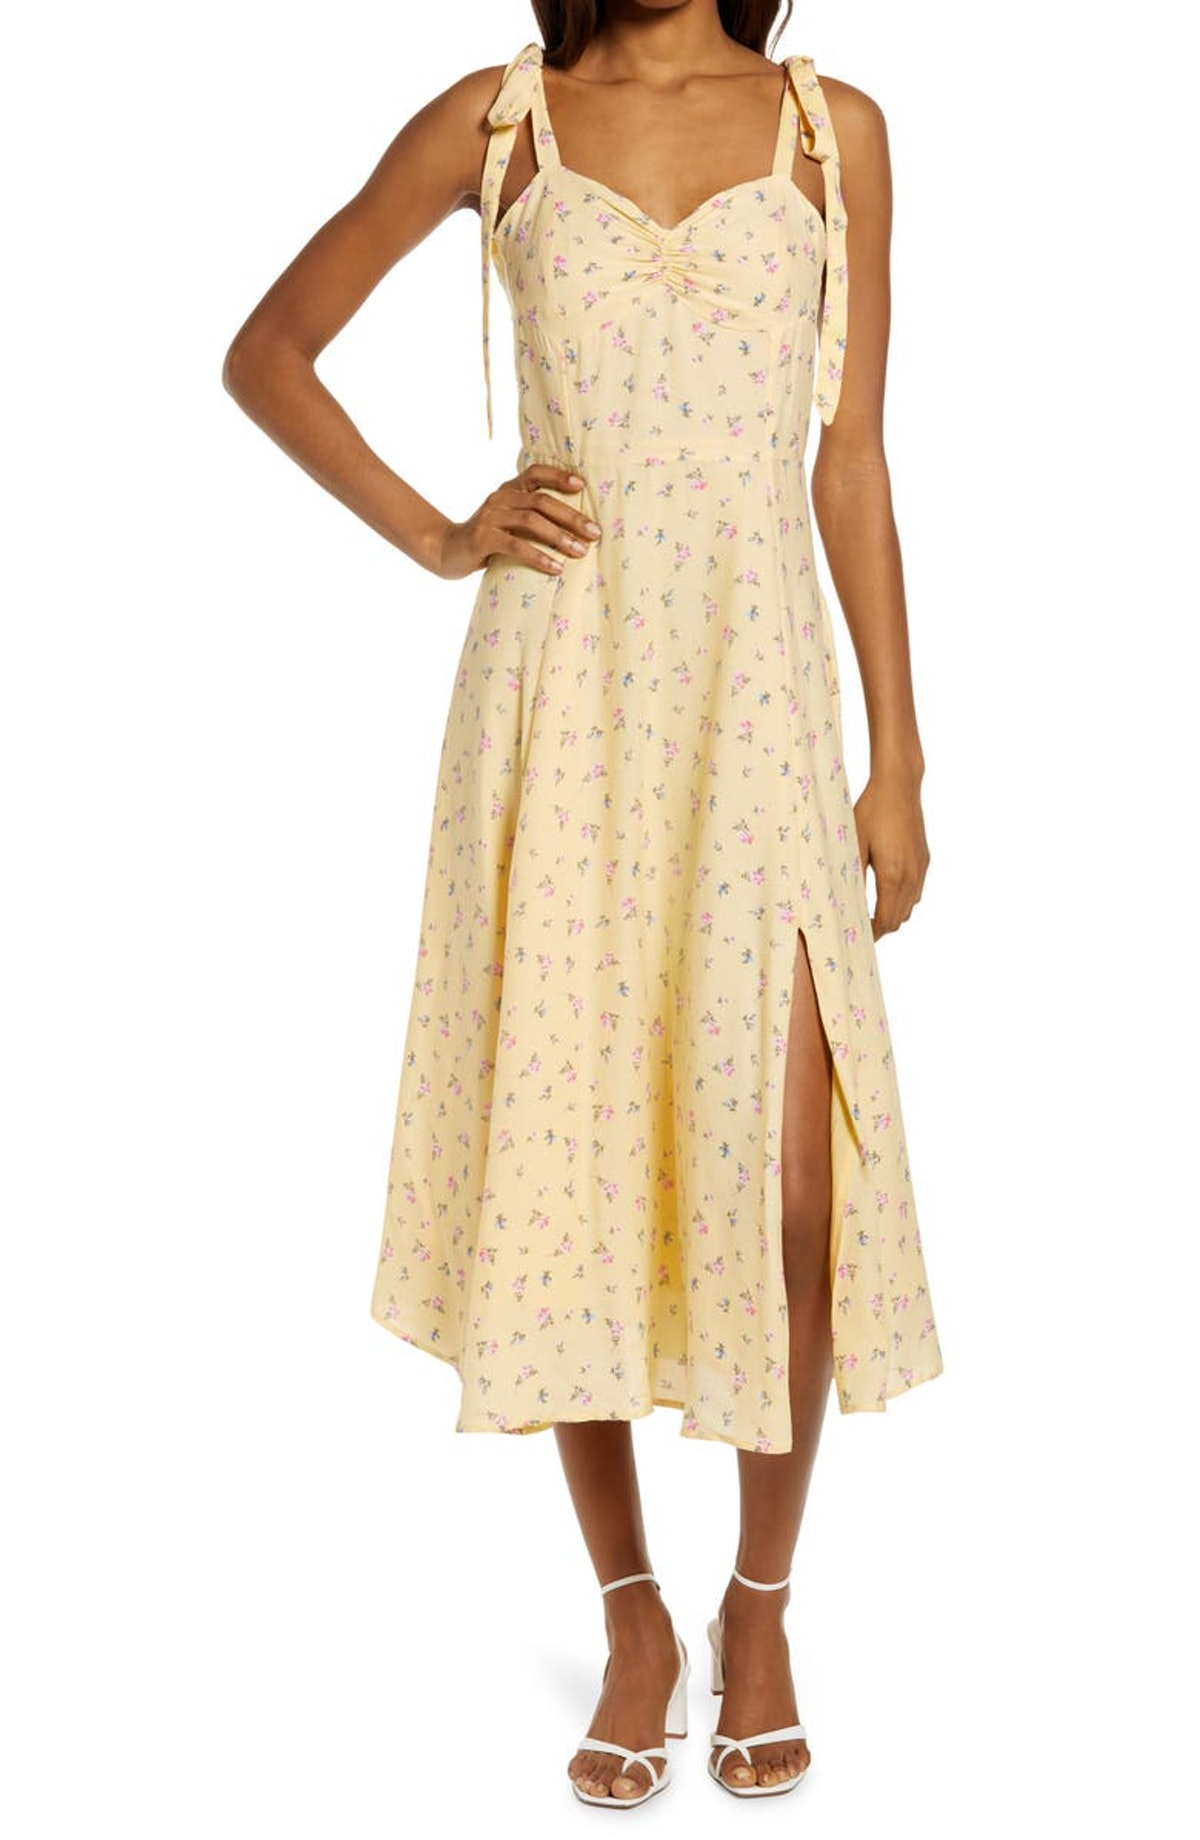 Floral Ditsy Tie Shoulder Midi Dress from BARDOT, available to shop on Nordstrom.